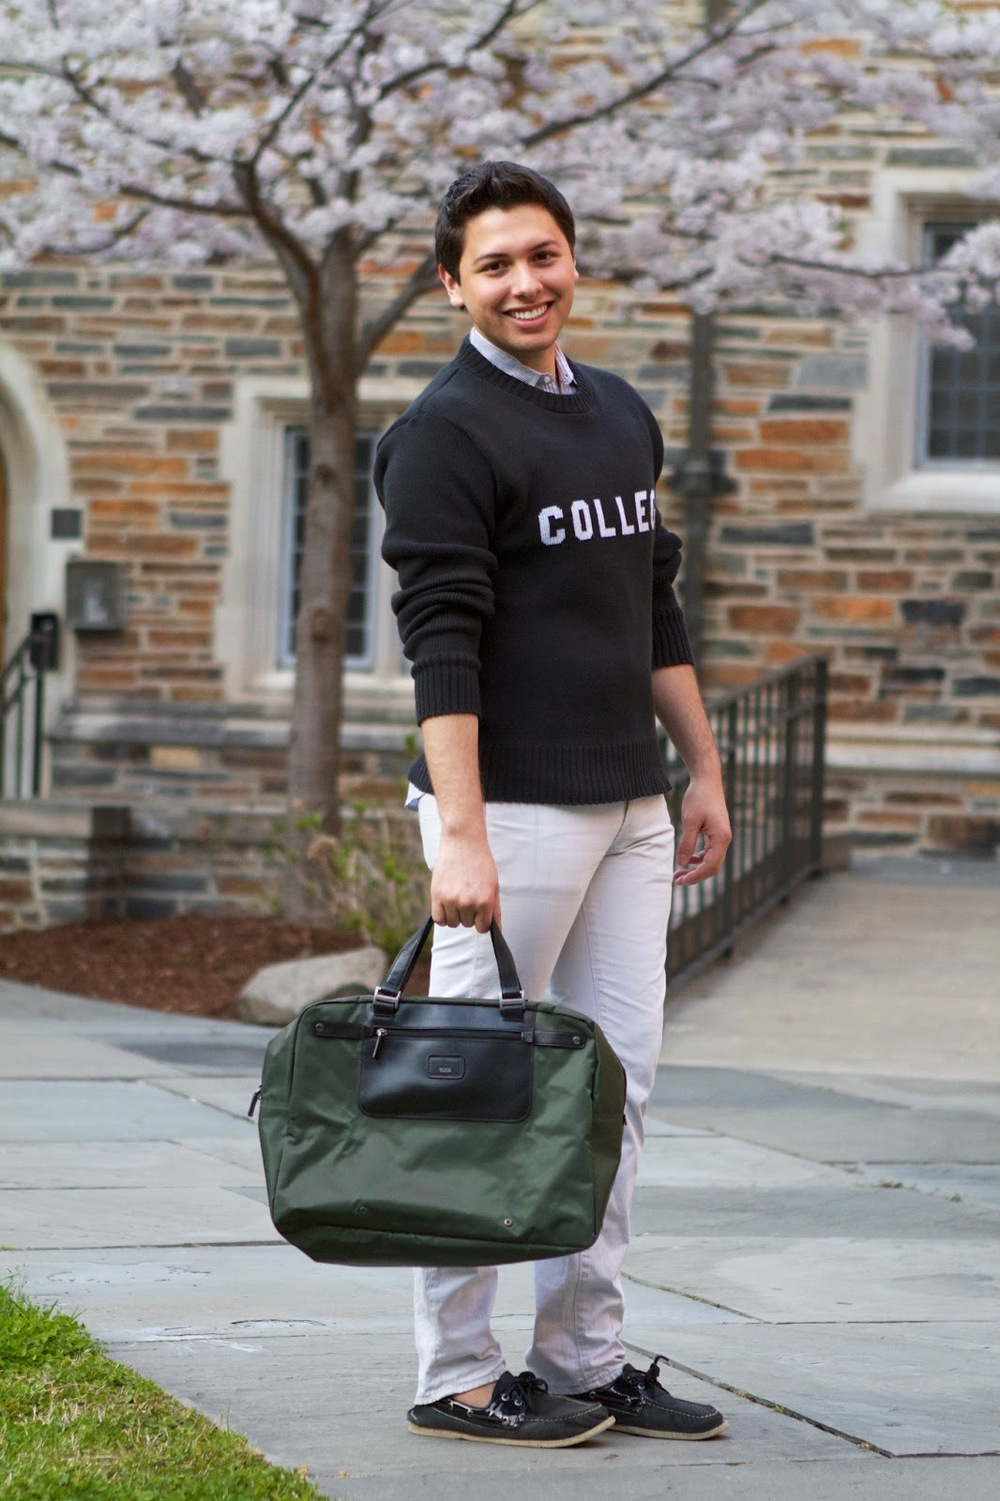 Chris Hurtado is a Duke sophomore wearing the School House Bluto Blutarsky sweater over a blue oxford cloth button down shirt OCBD, white slim jeans, gray and black contrasting boat shoes and a hunter green and black leather trim handbag